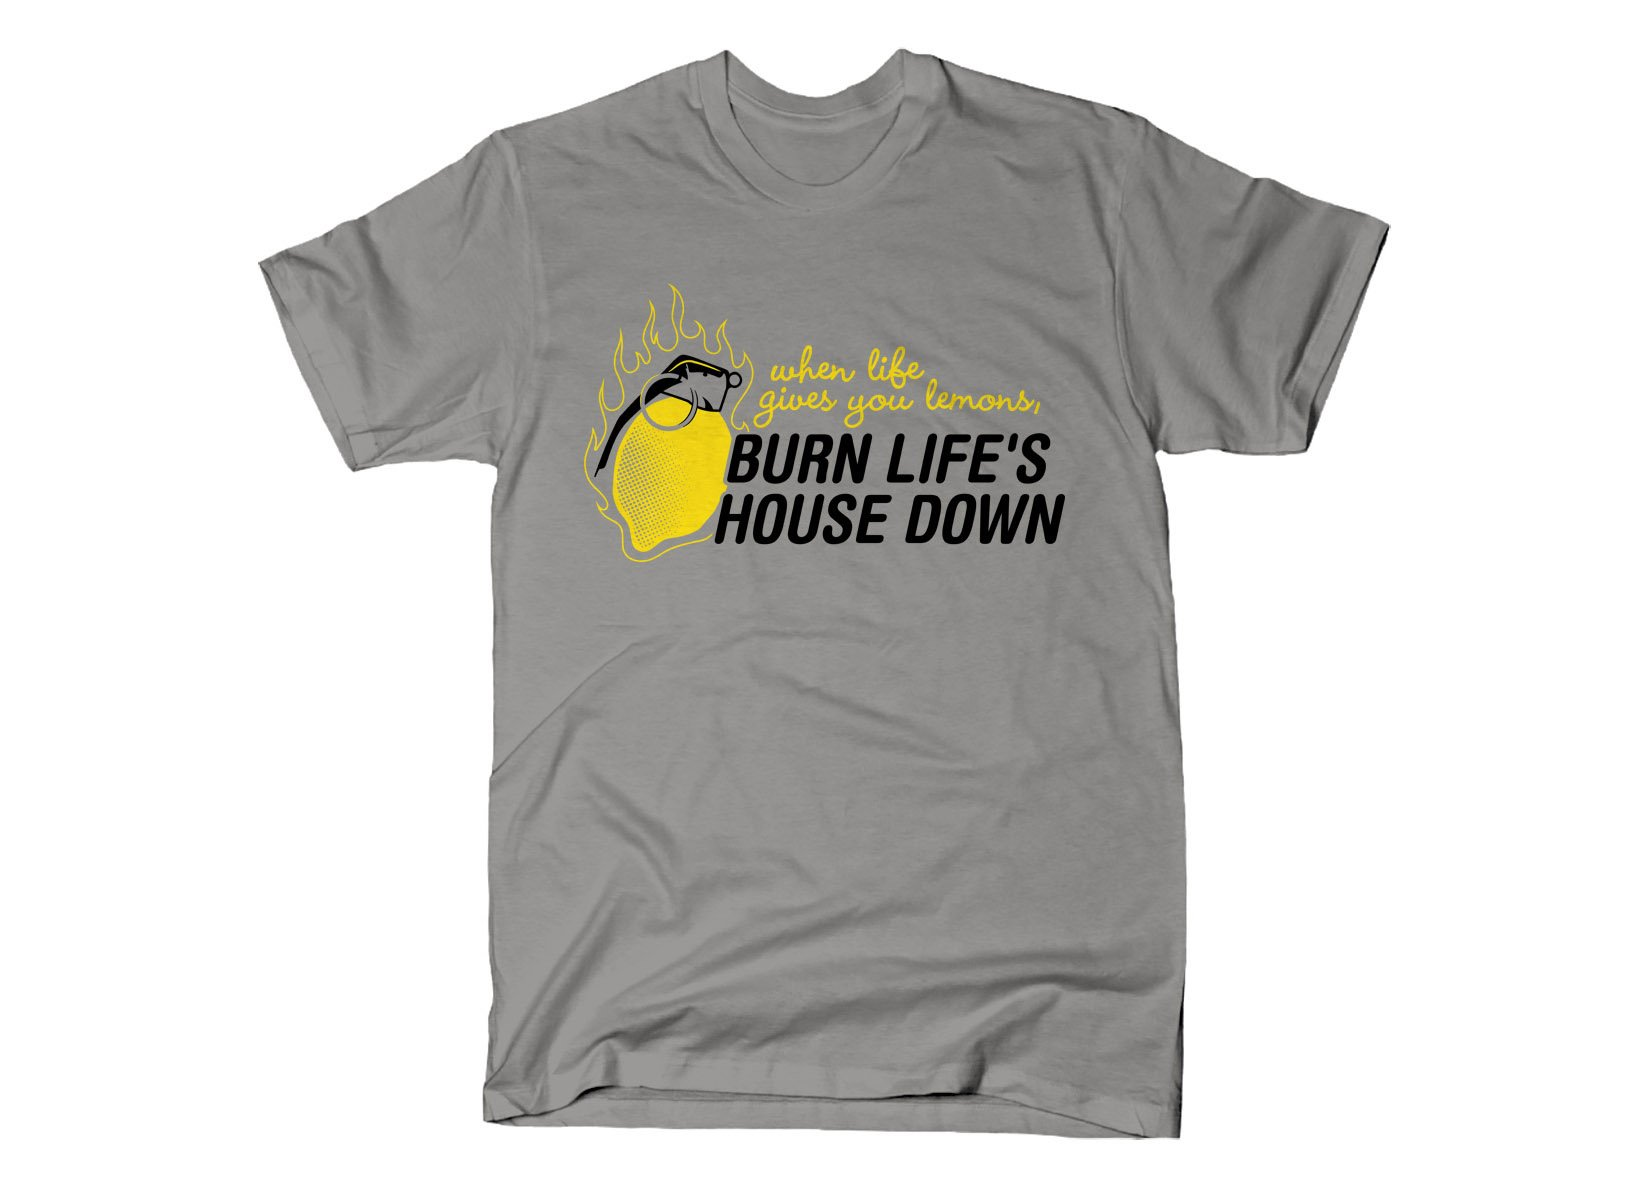 Burn Life's House Down on Mens T-Shirt